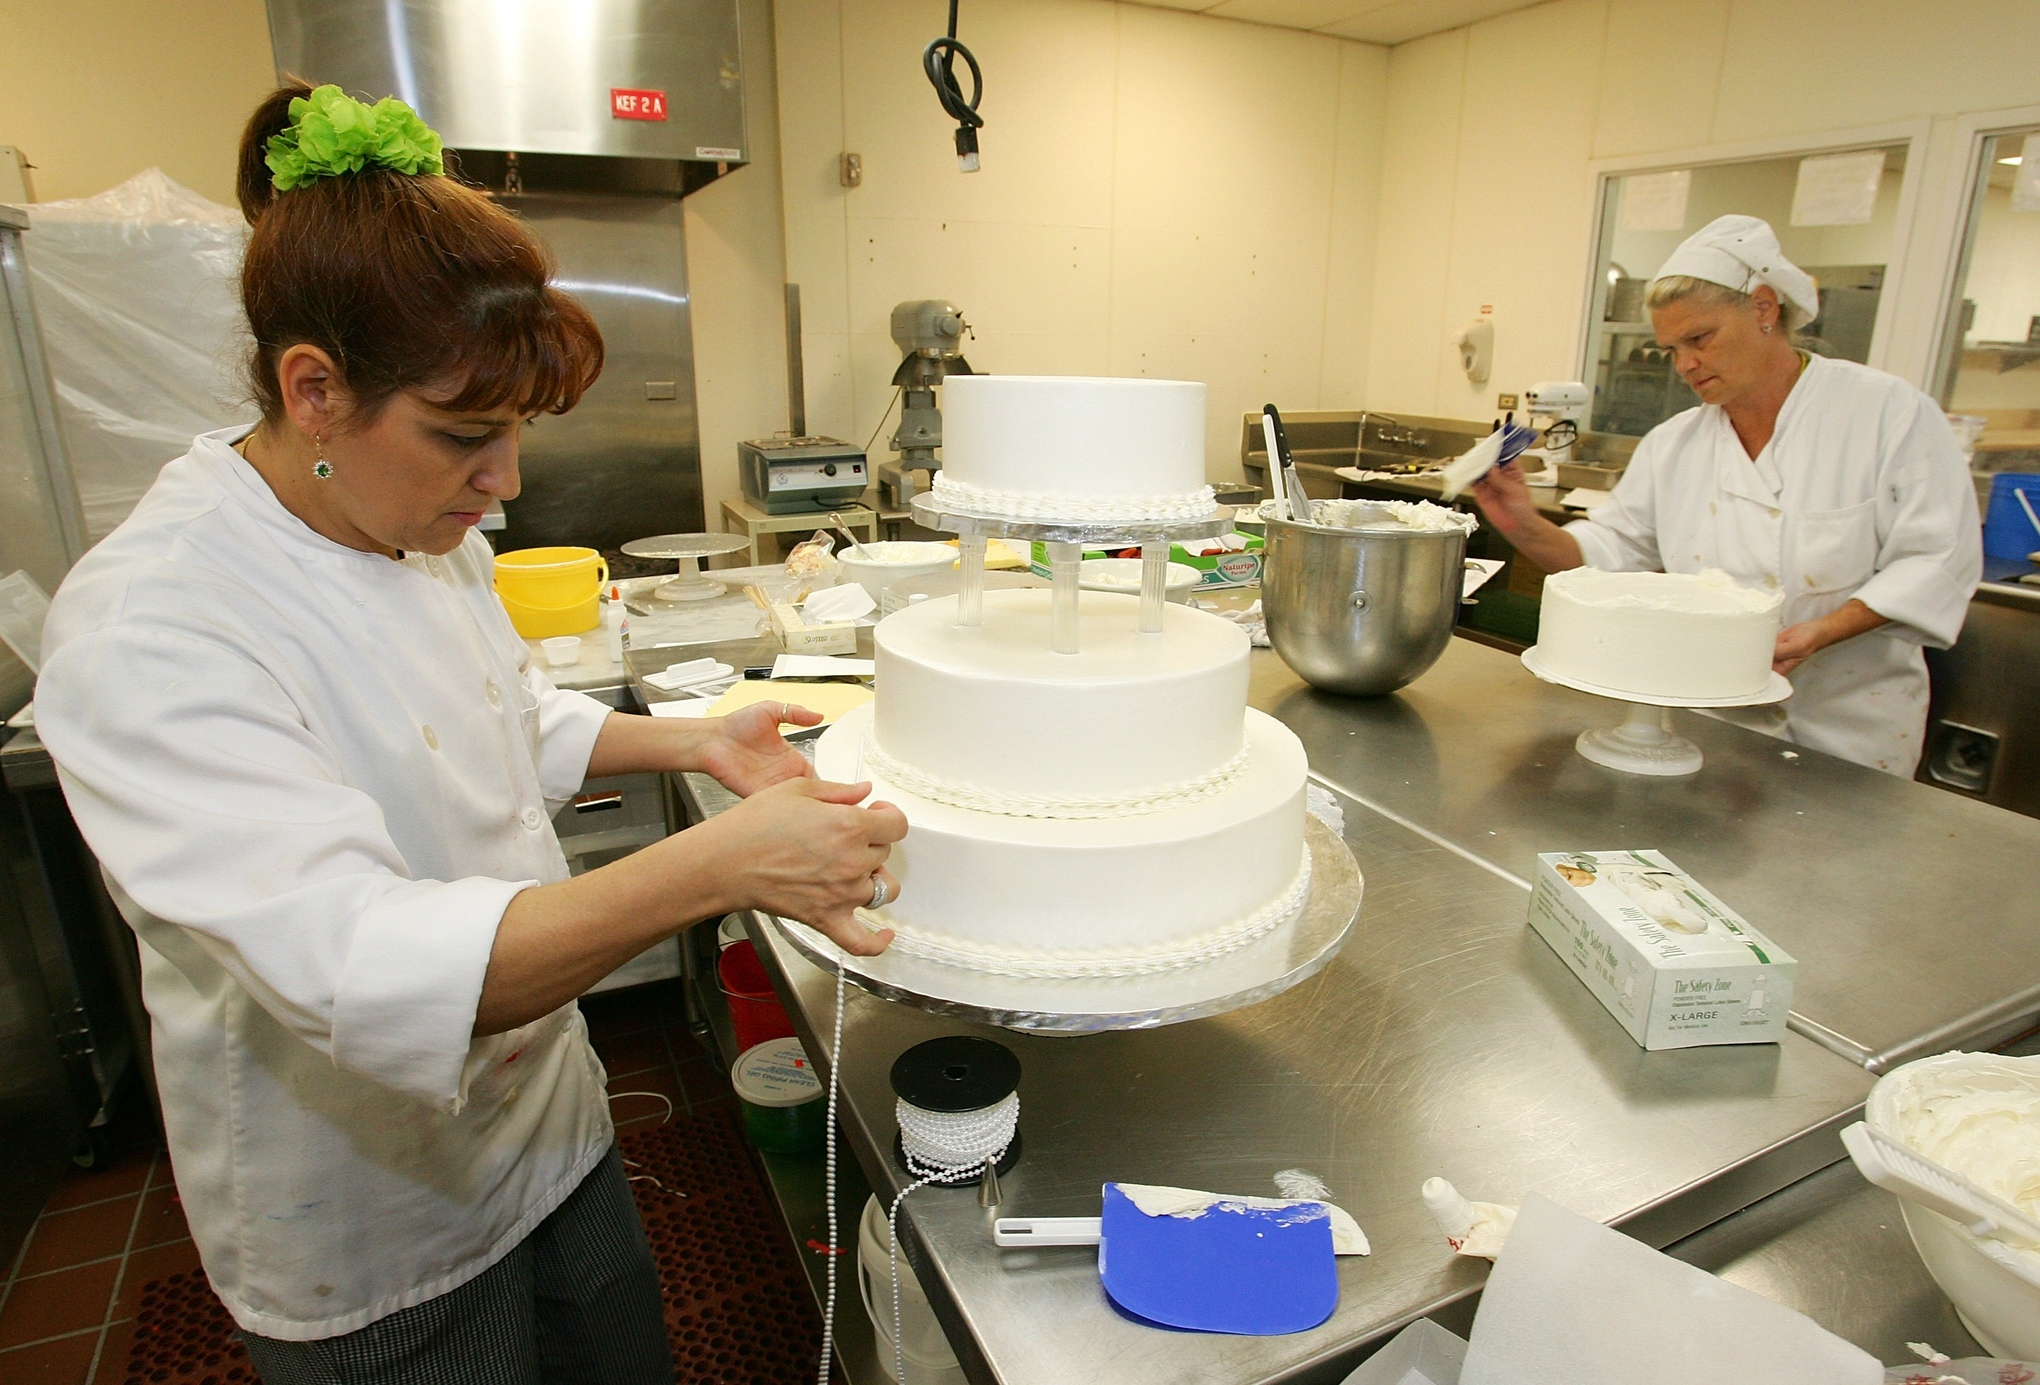 Cake Decorating Job Wages : Everything you need to know about the gender wage gap - Vox